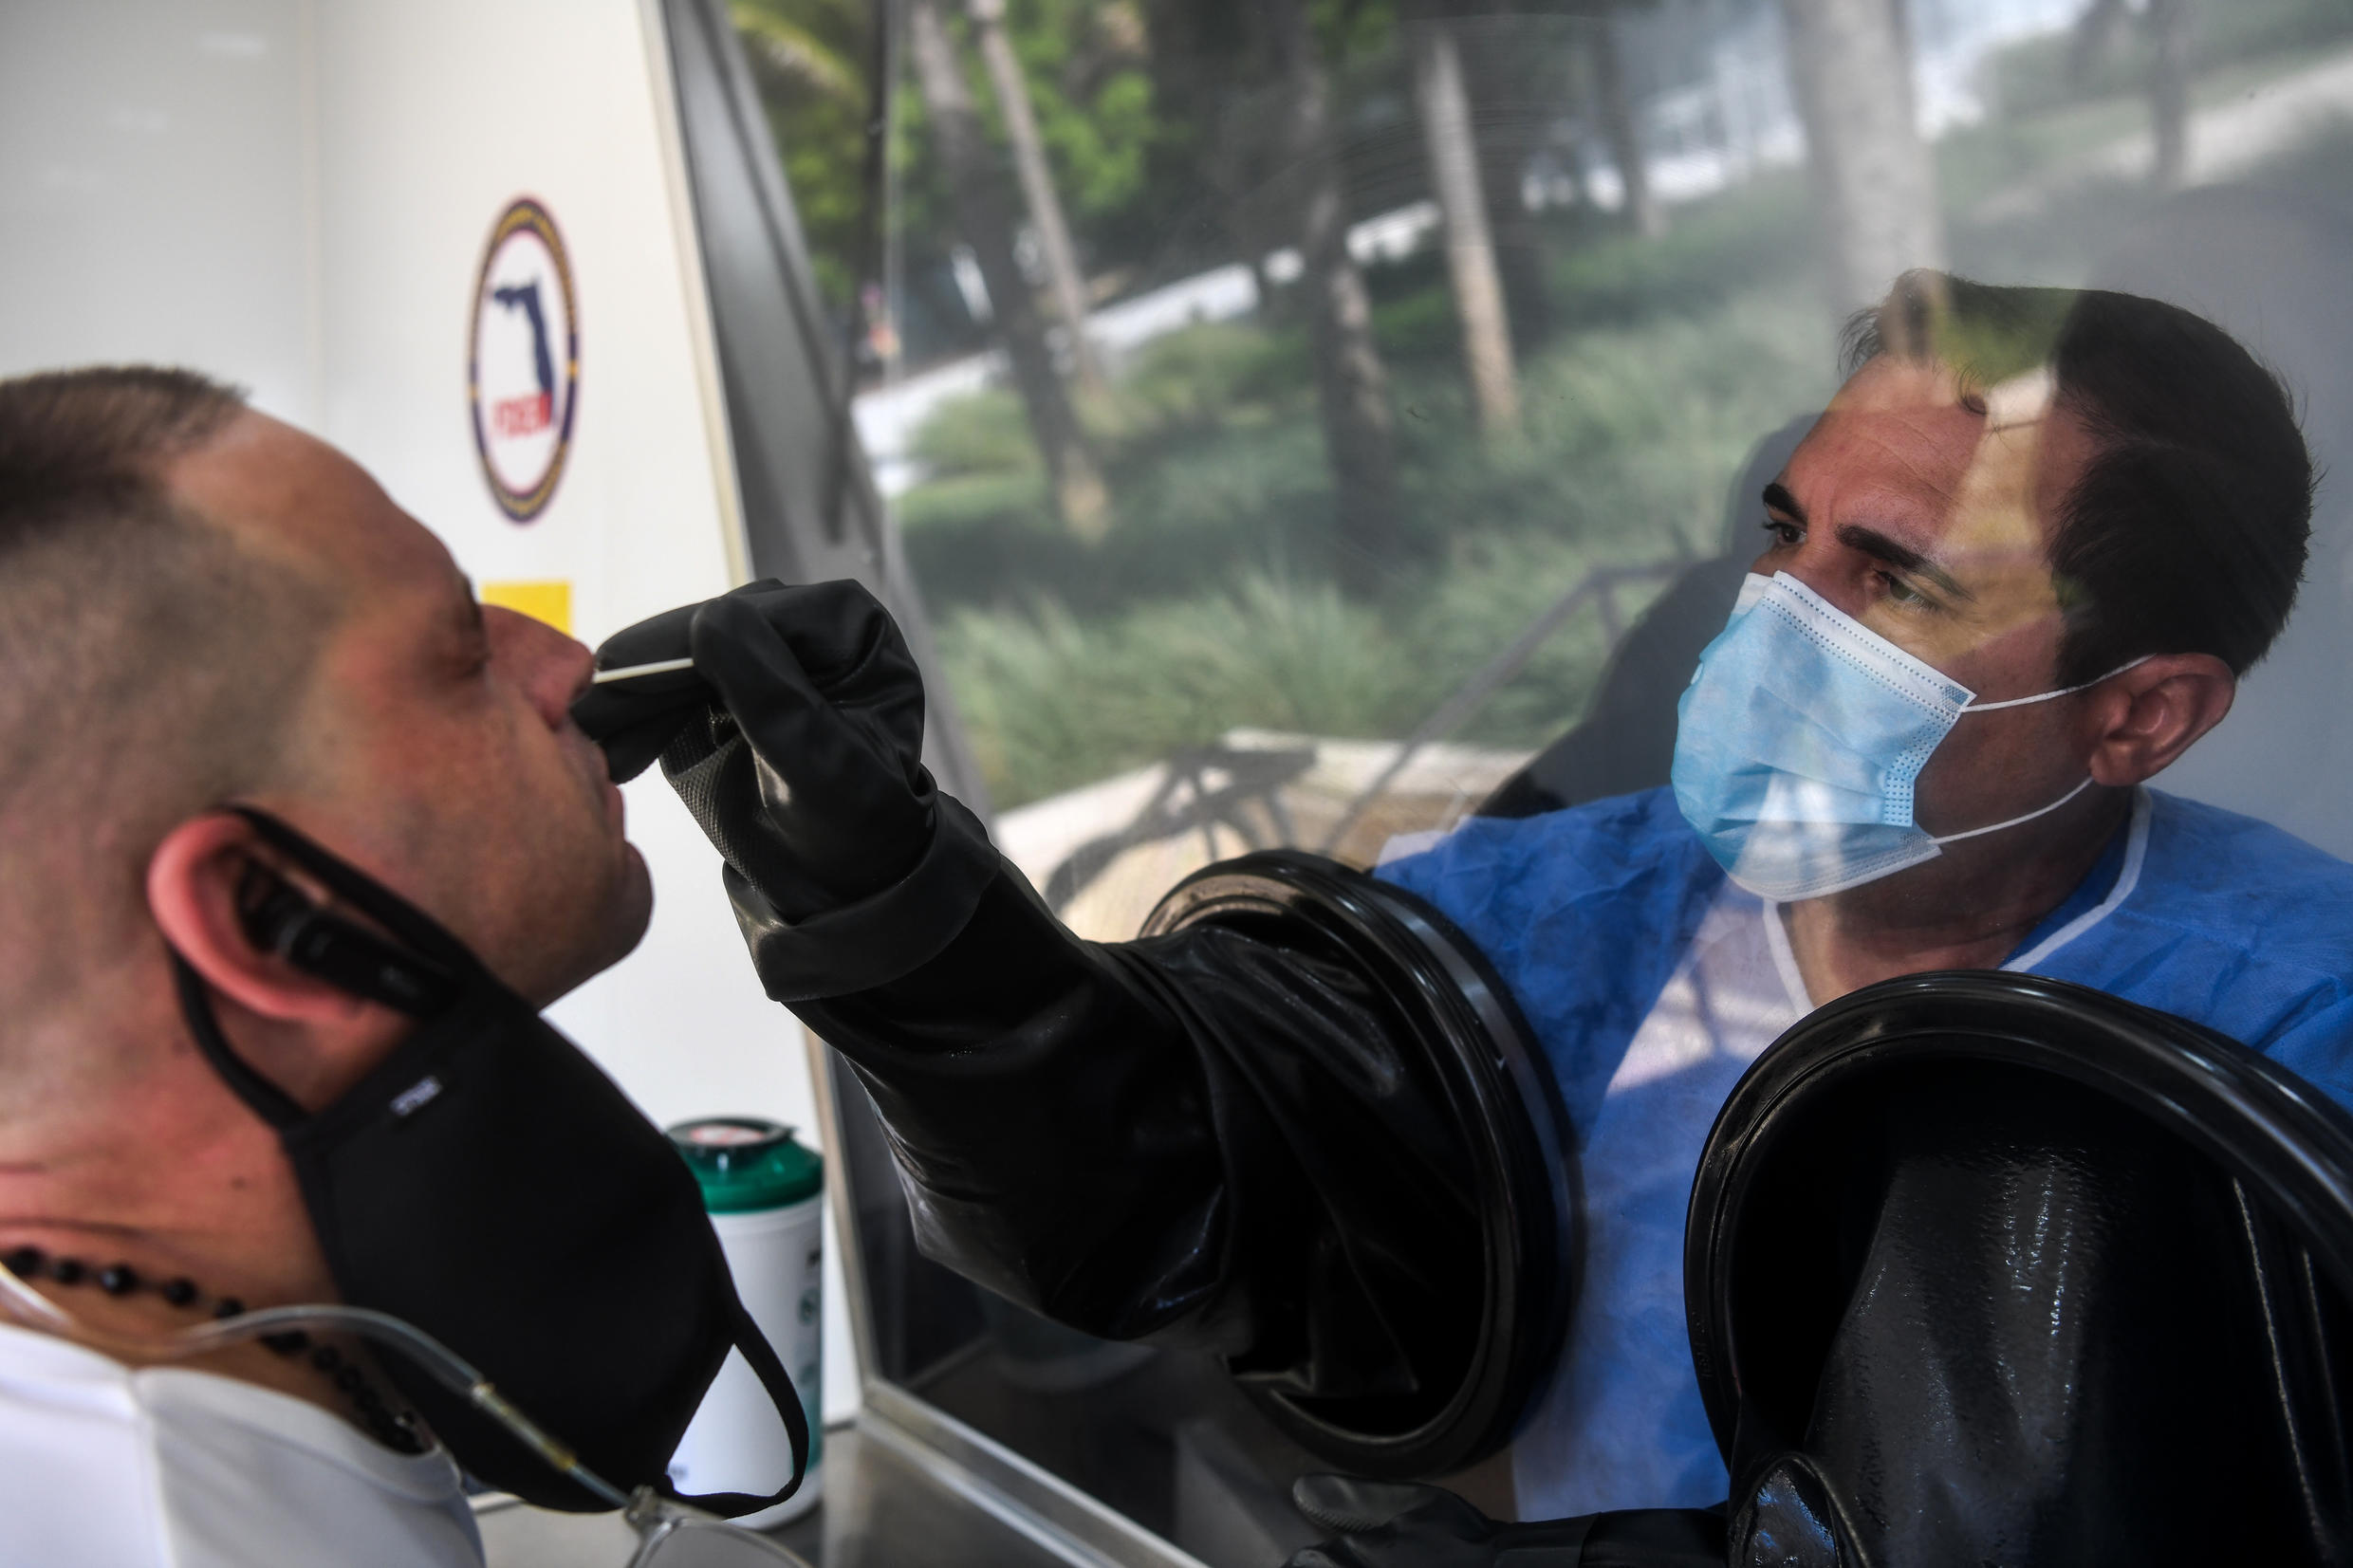 A man takes a Covid-19 test on July 24, 2020 in Miami Beach, Florida.